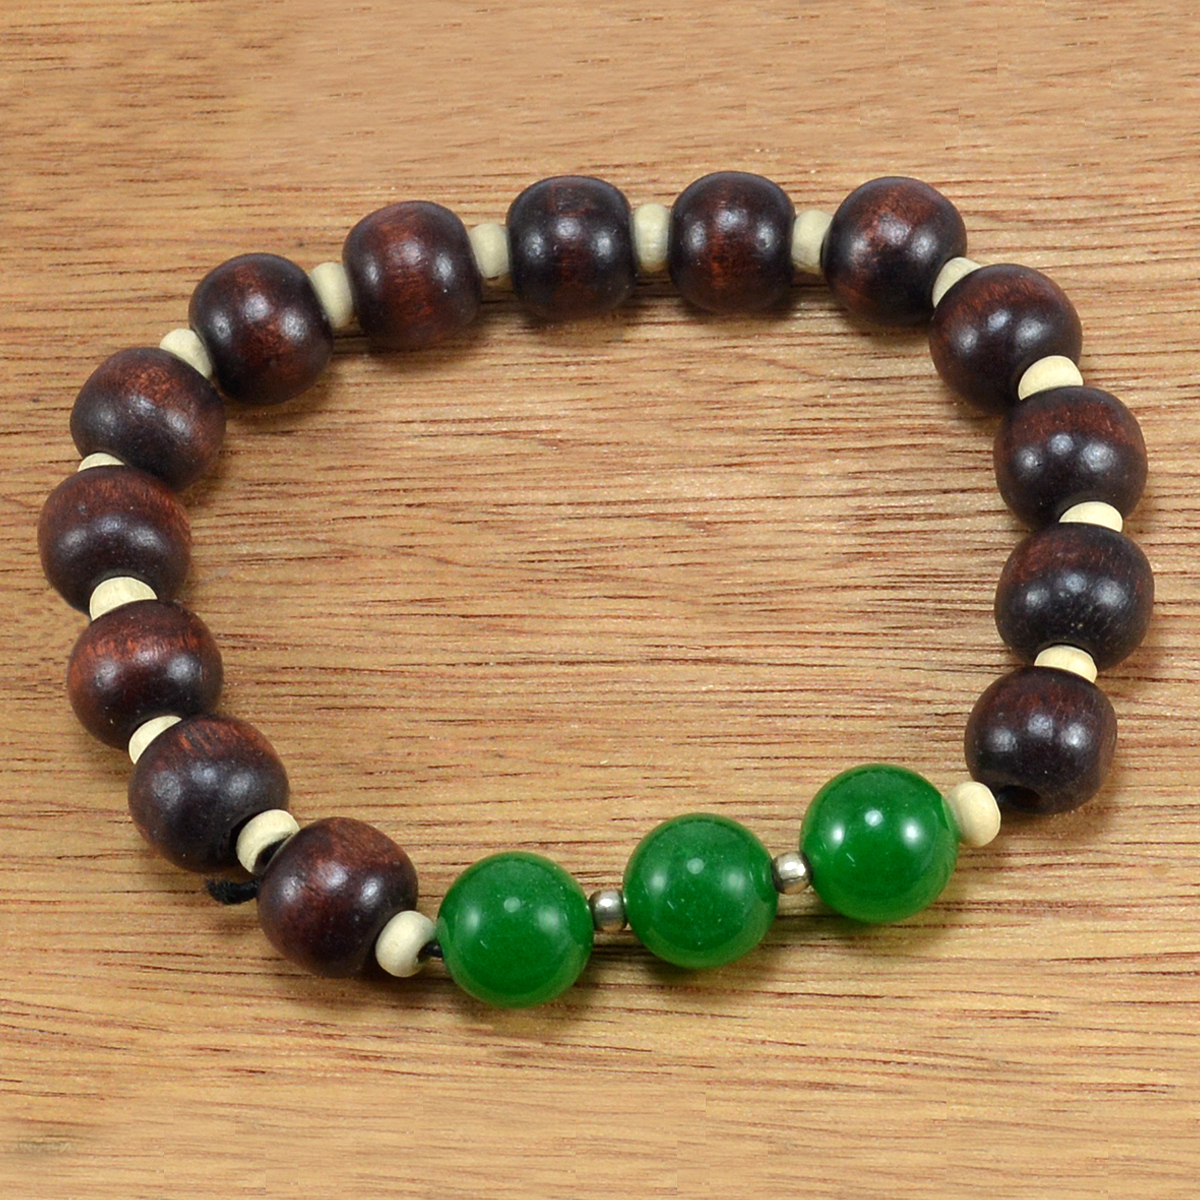 Beaded Green Onyx With Handmade Jewelry Manufacturer Wood Beads 925 Sterling Silver Stretchable Bracelet Jaipur Rajasthan India